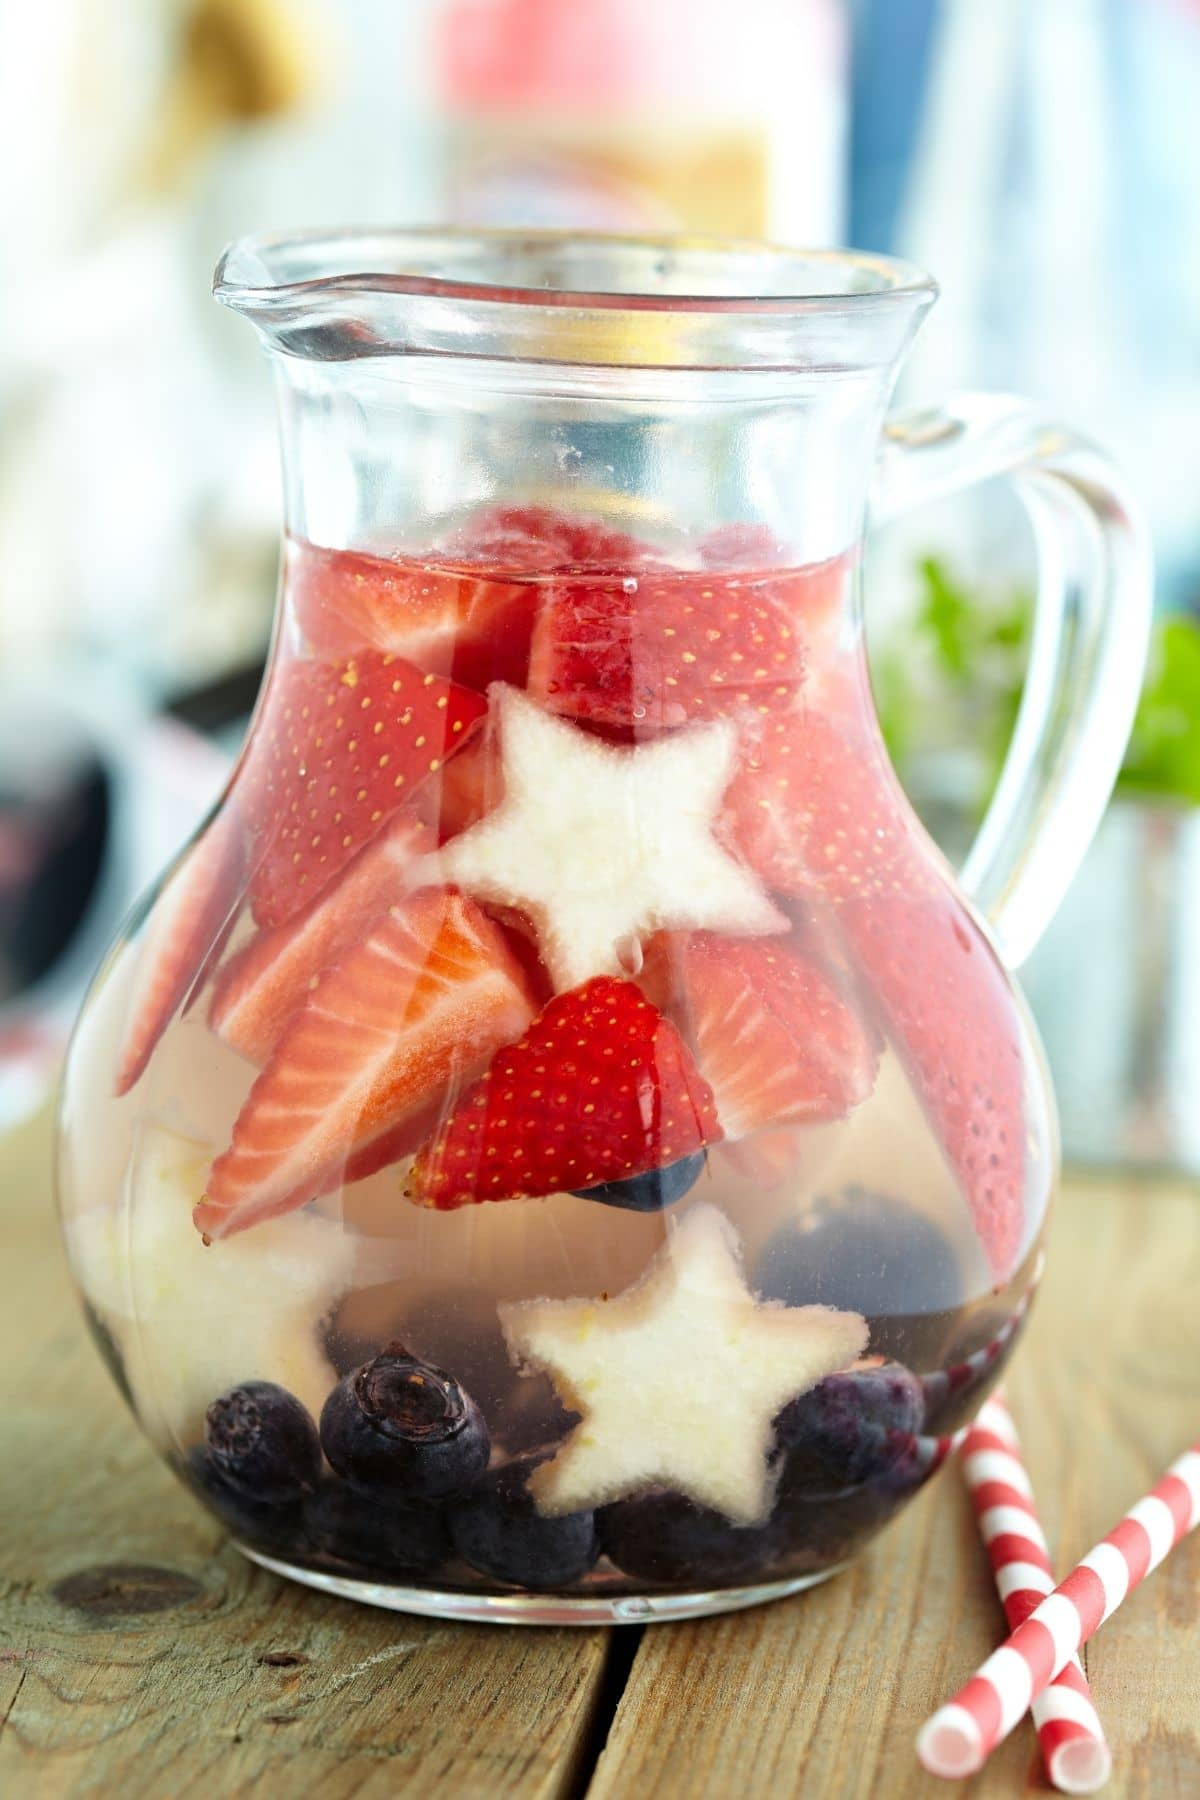 Glass pitcher filled with clear liquid strawberries blueberries and pineapple stars